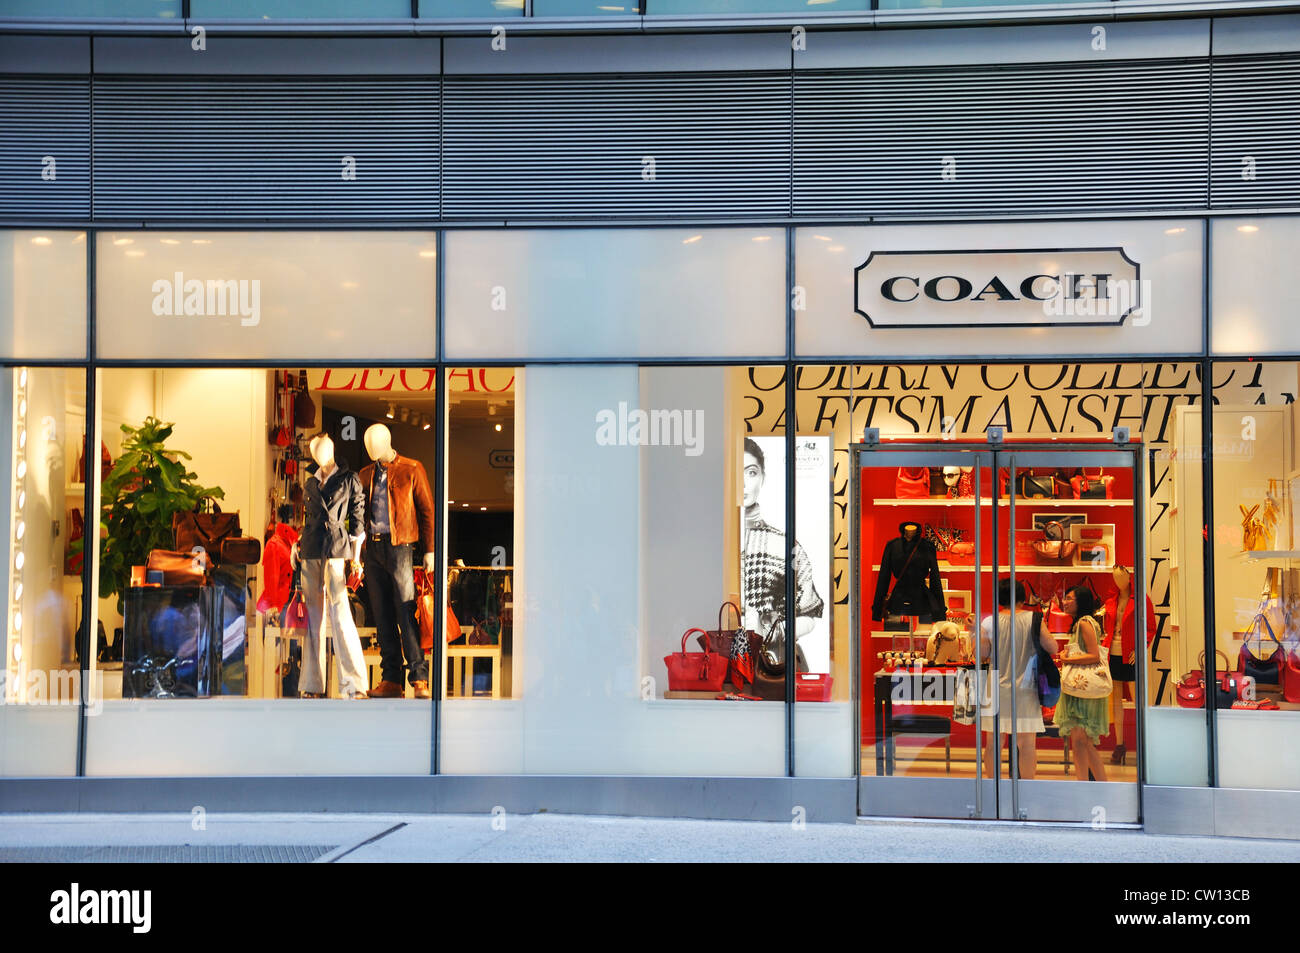 78019f7592 Coach Store Stock Photos & Coach Store Stock Images - Alamy